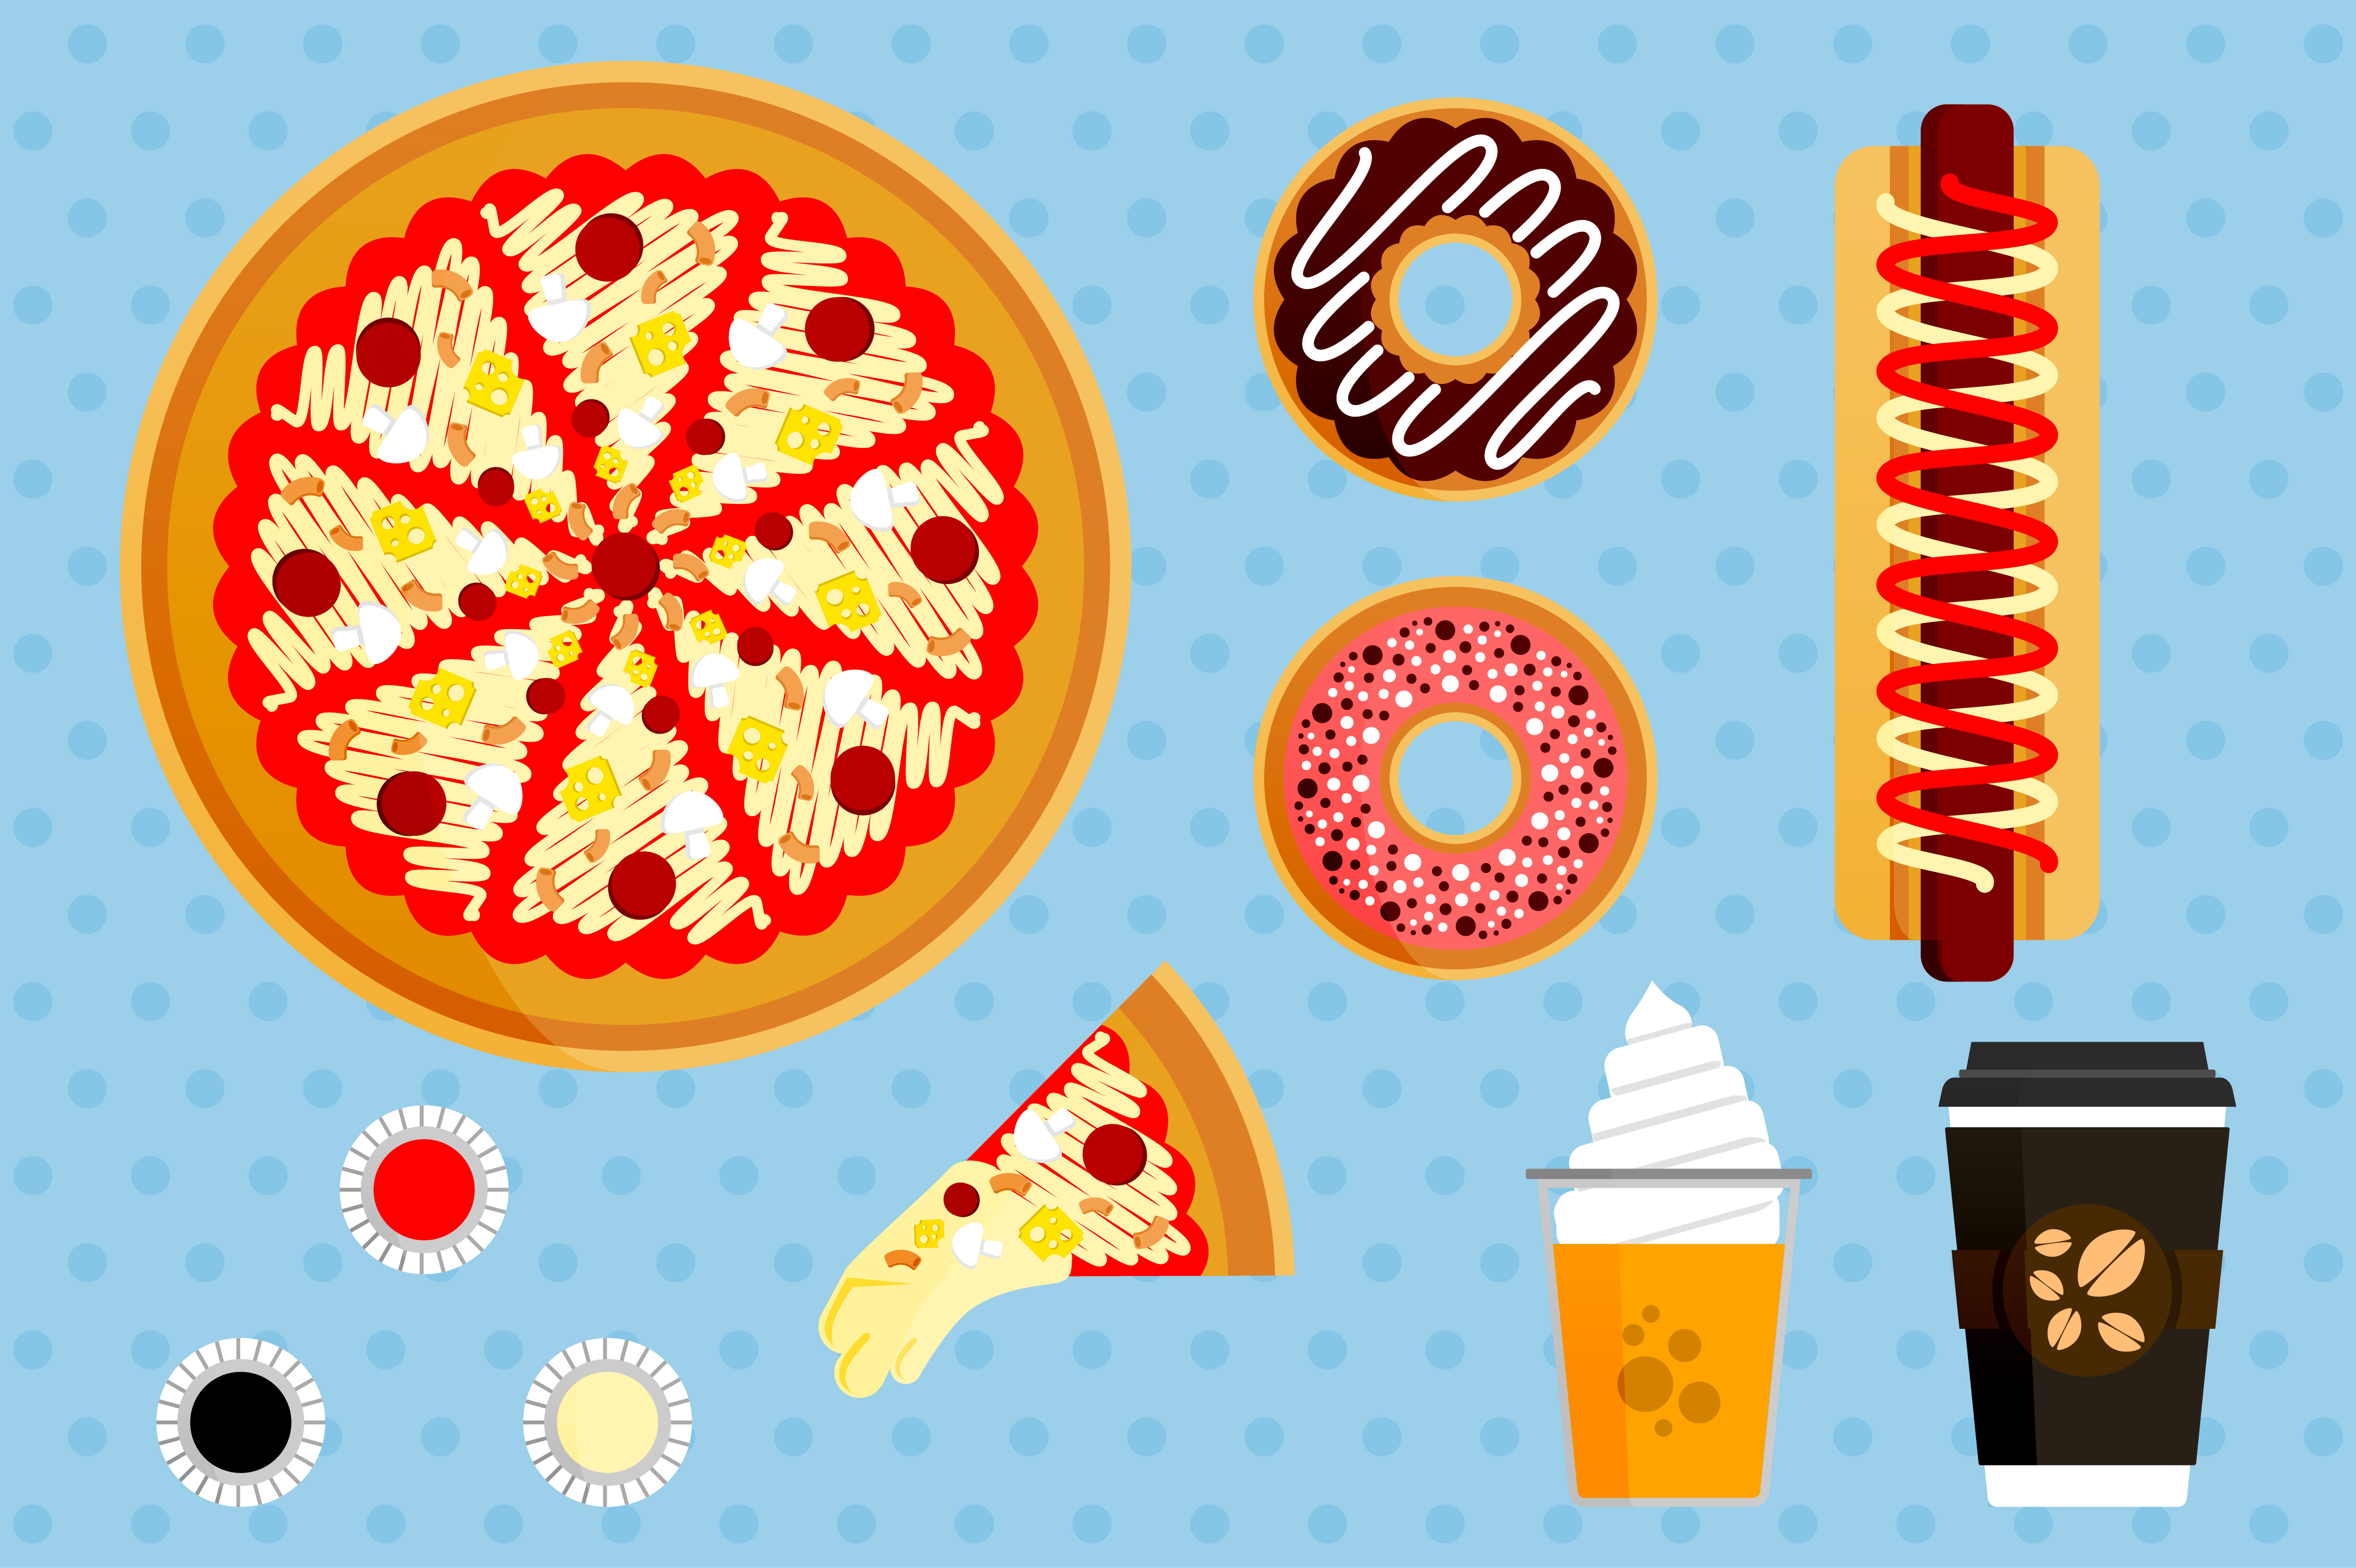 Download Free Illustration Set Of Pizza Orders Graphic By Setiawanarief111 for Cricut Explore, Silhouette and other cutting machines.